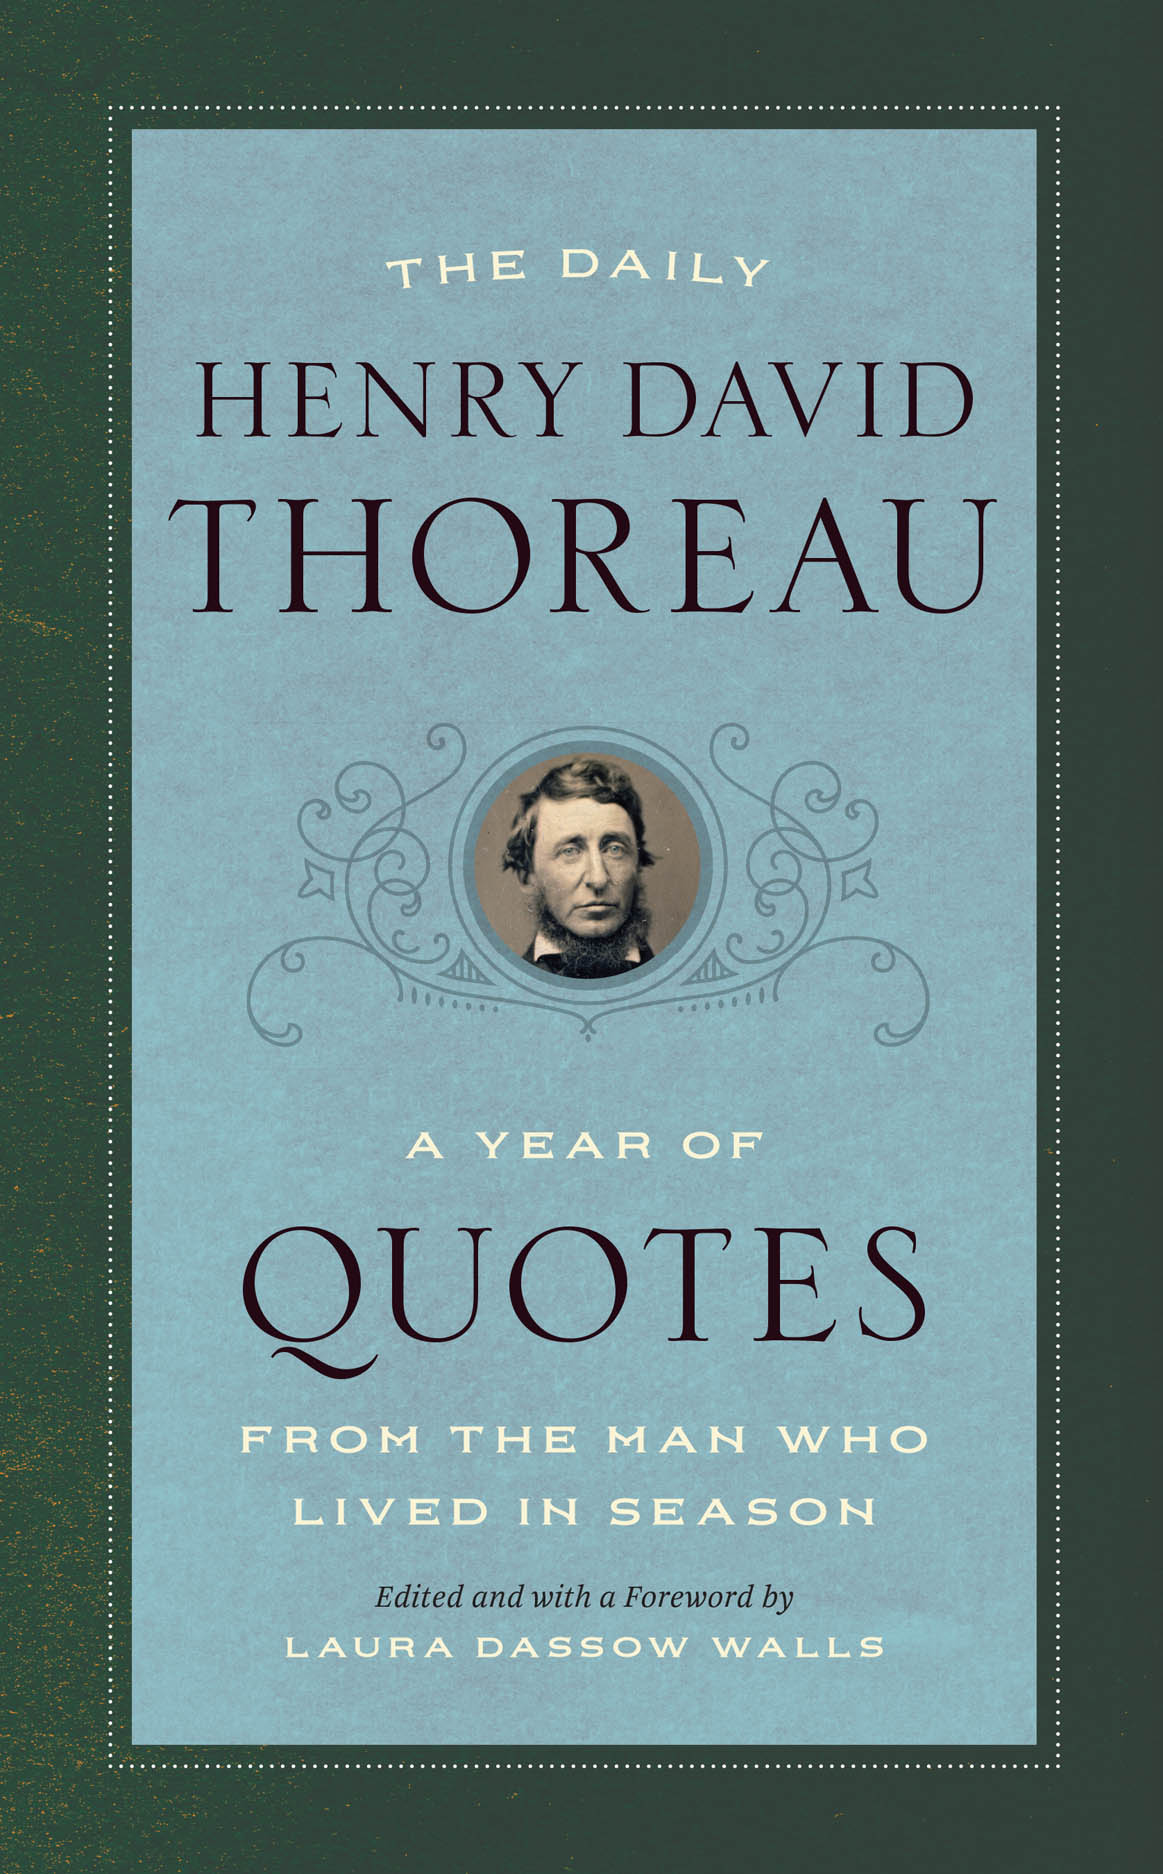 The Daily Henry David Thoreau: A Year of Quotes from the Man Who Lived in Season